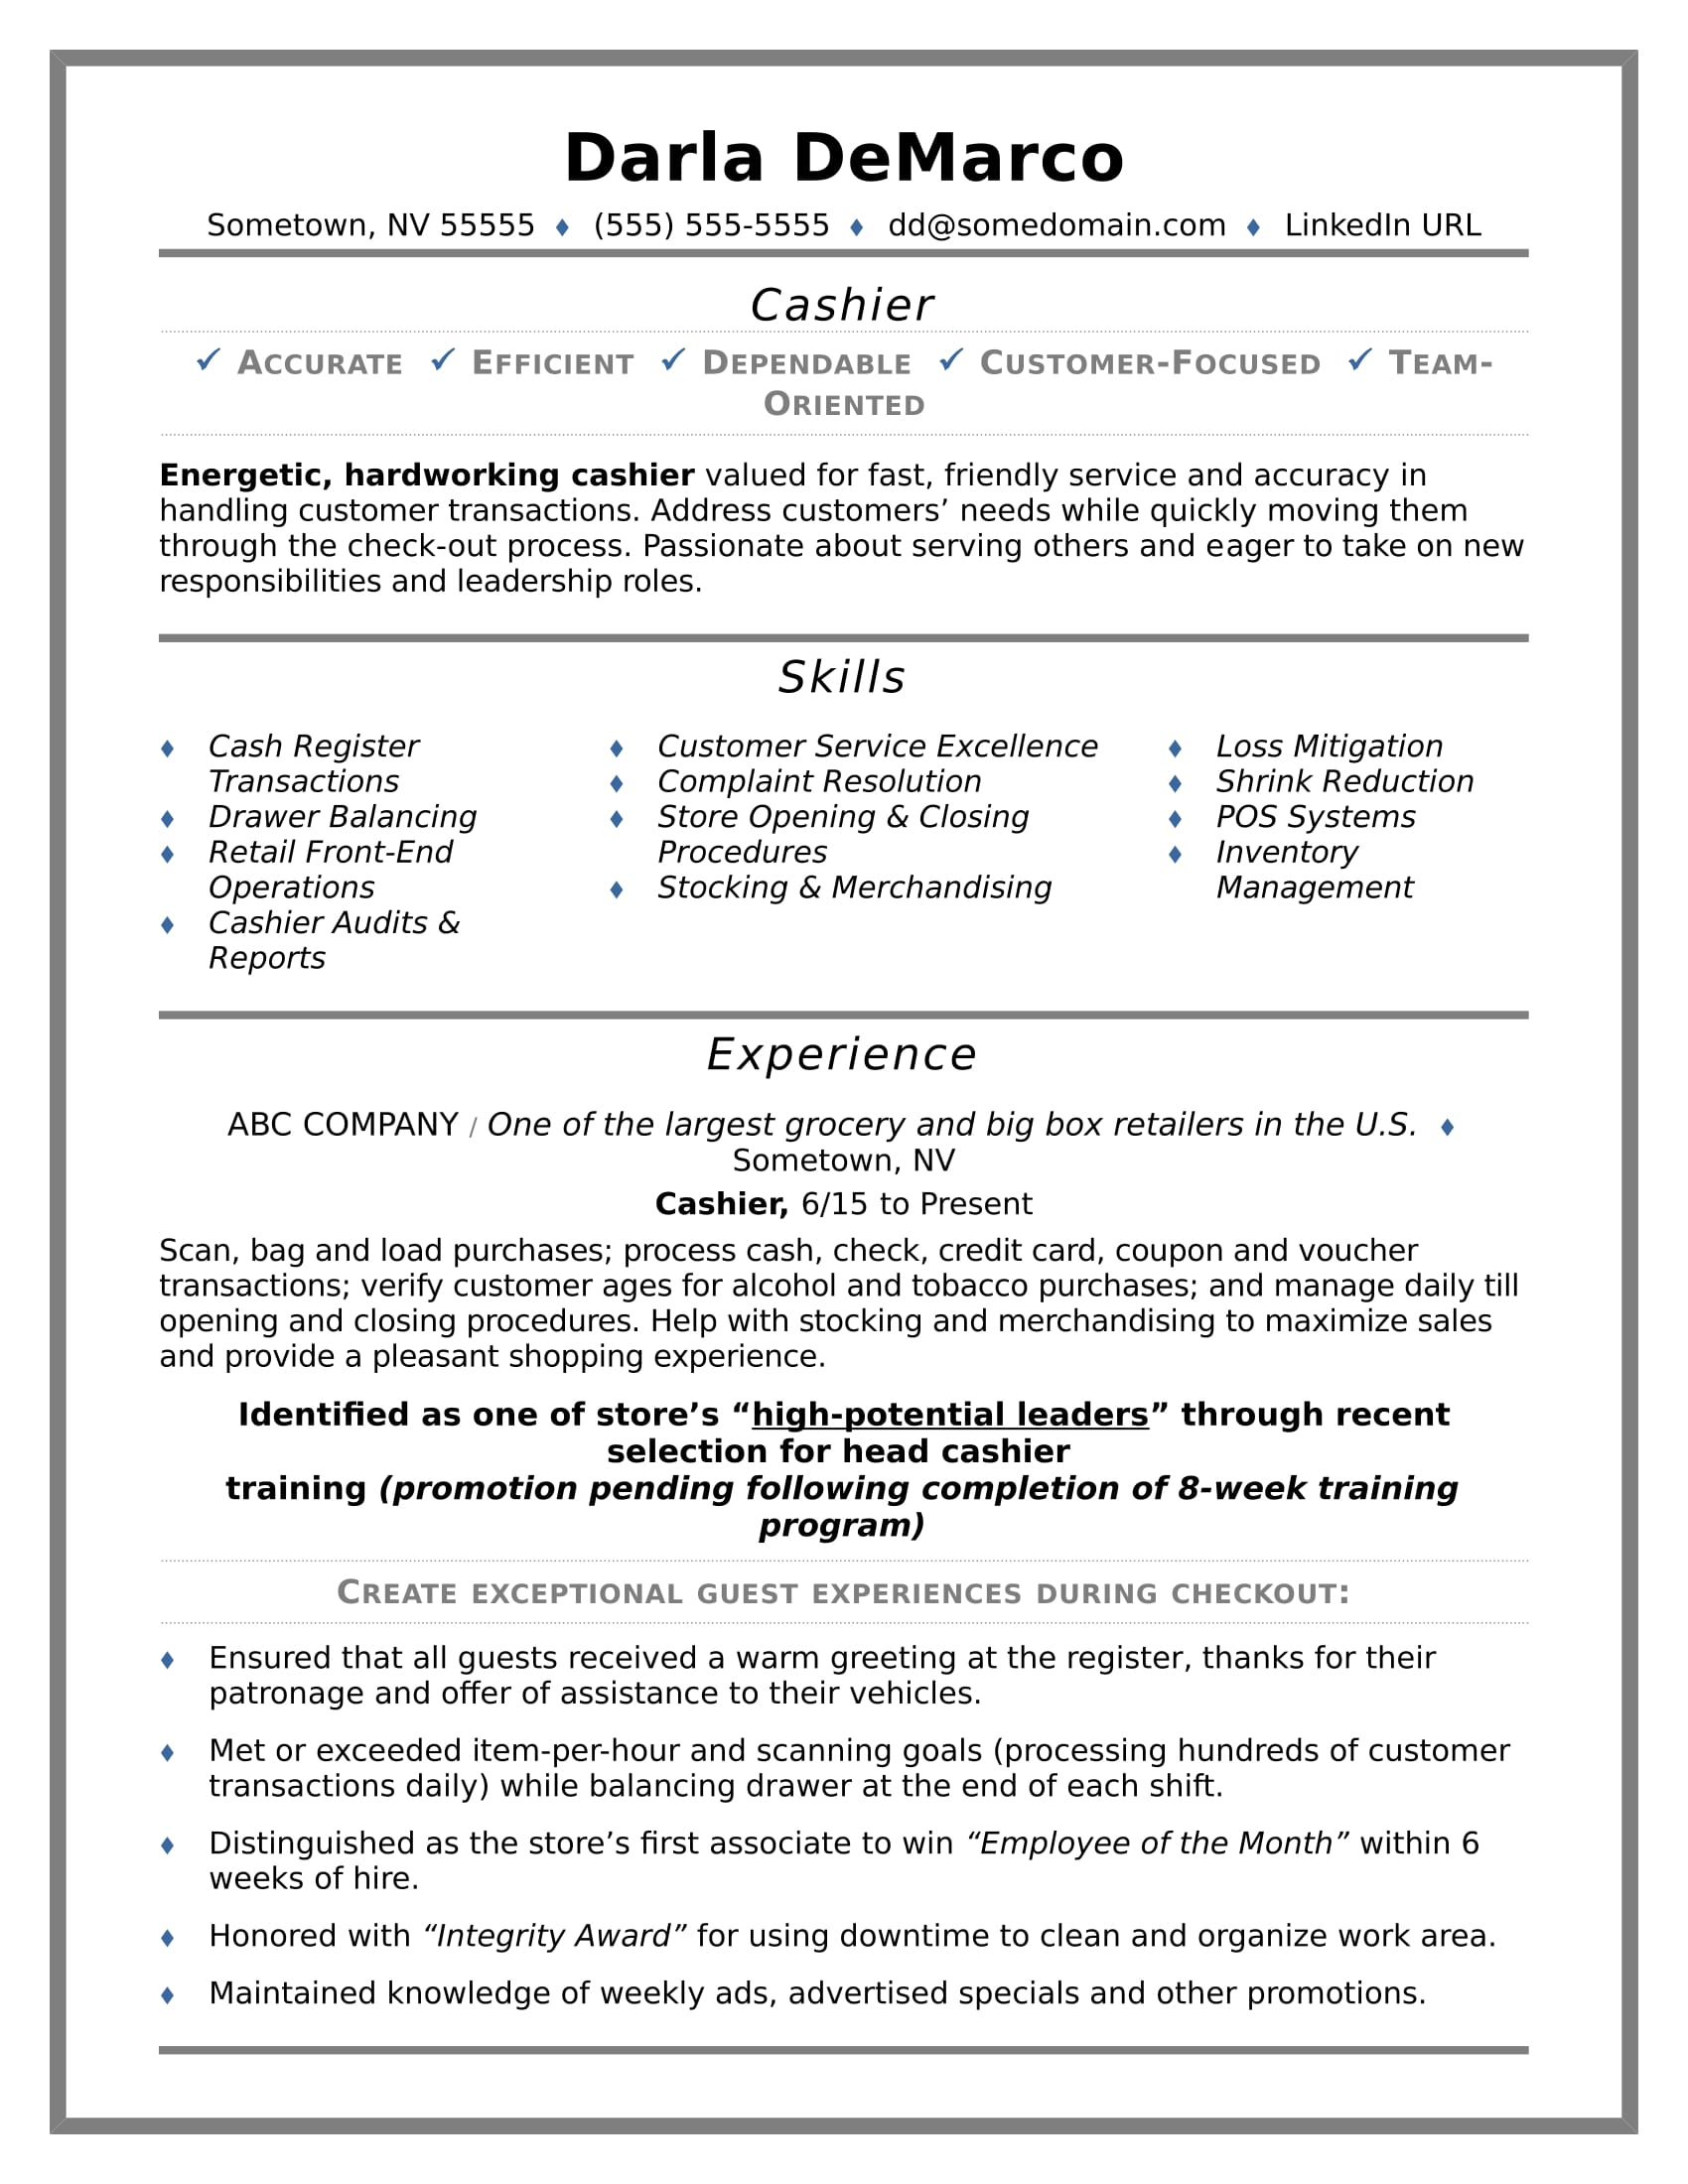 Cashier Resume Sample | Monster com